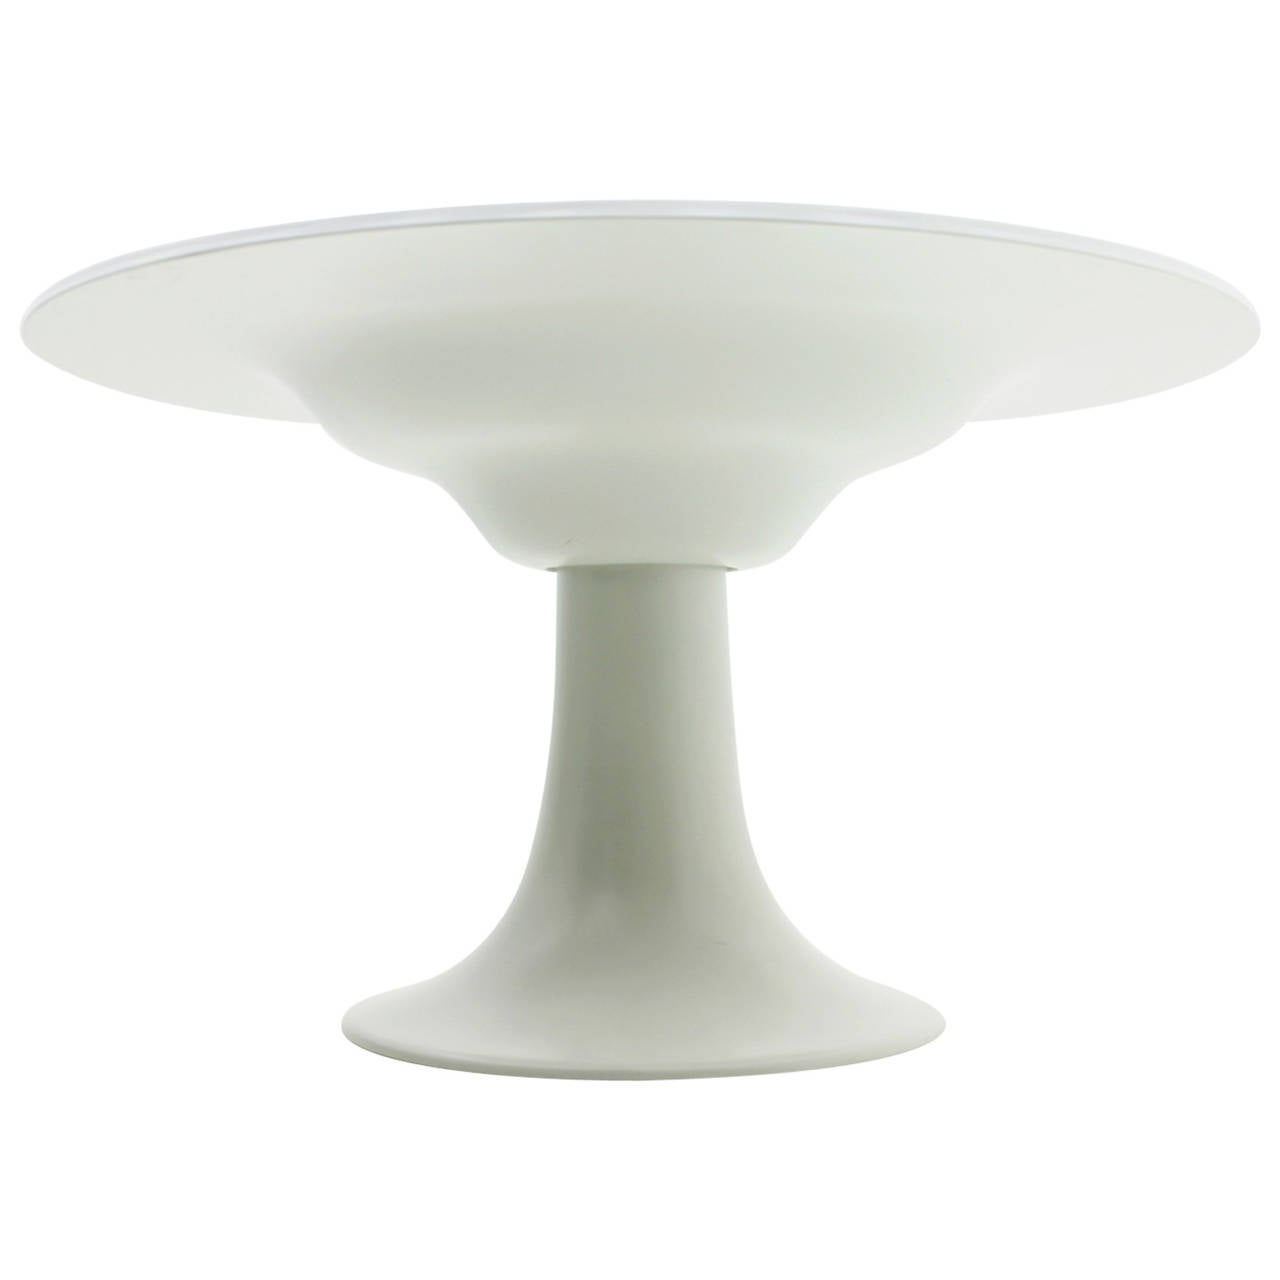 otto zapf table dining table column germany 1967 for sale at 1stdibs